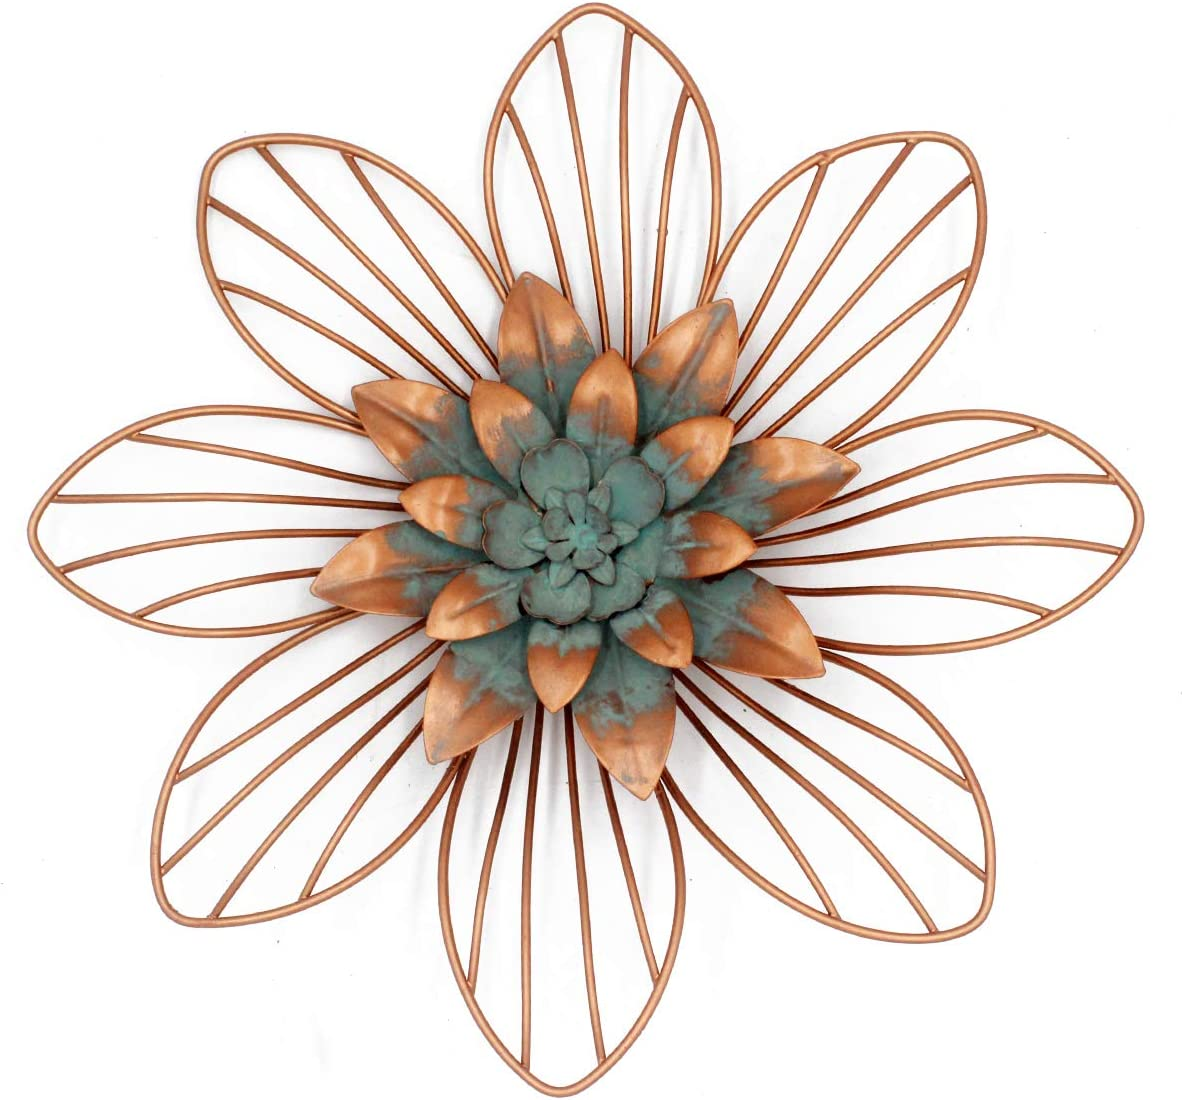 Metal Floral Wall Decoration Flower Wall Decor(Copper 11.75x1.2x11.75 inches)